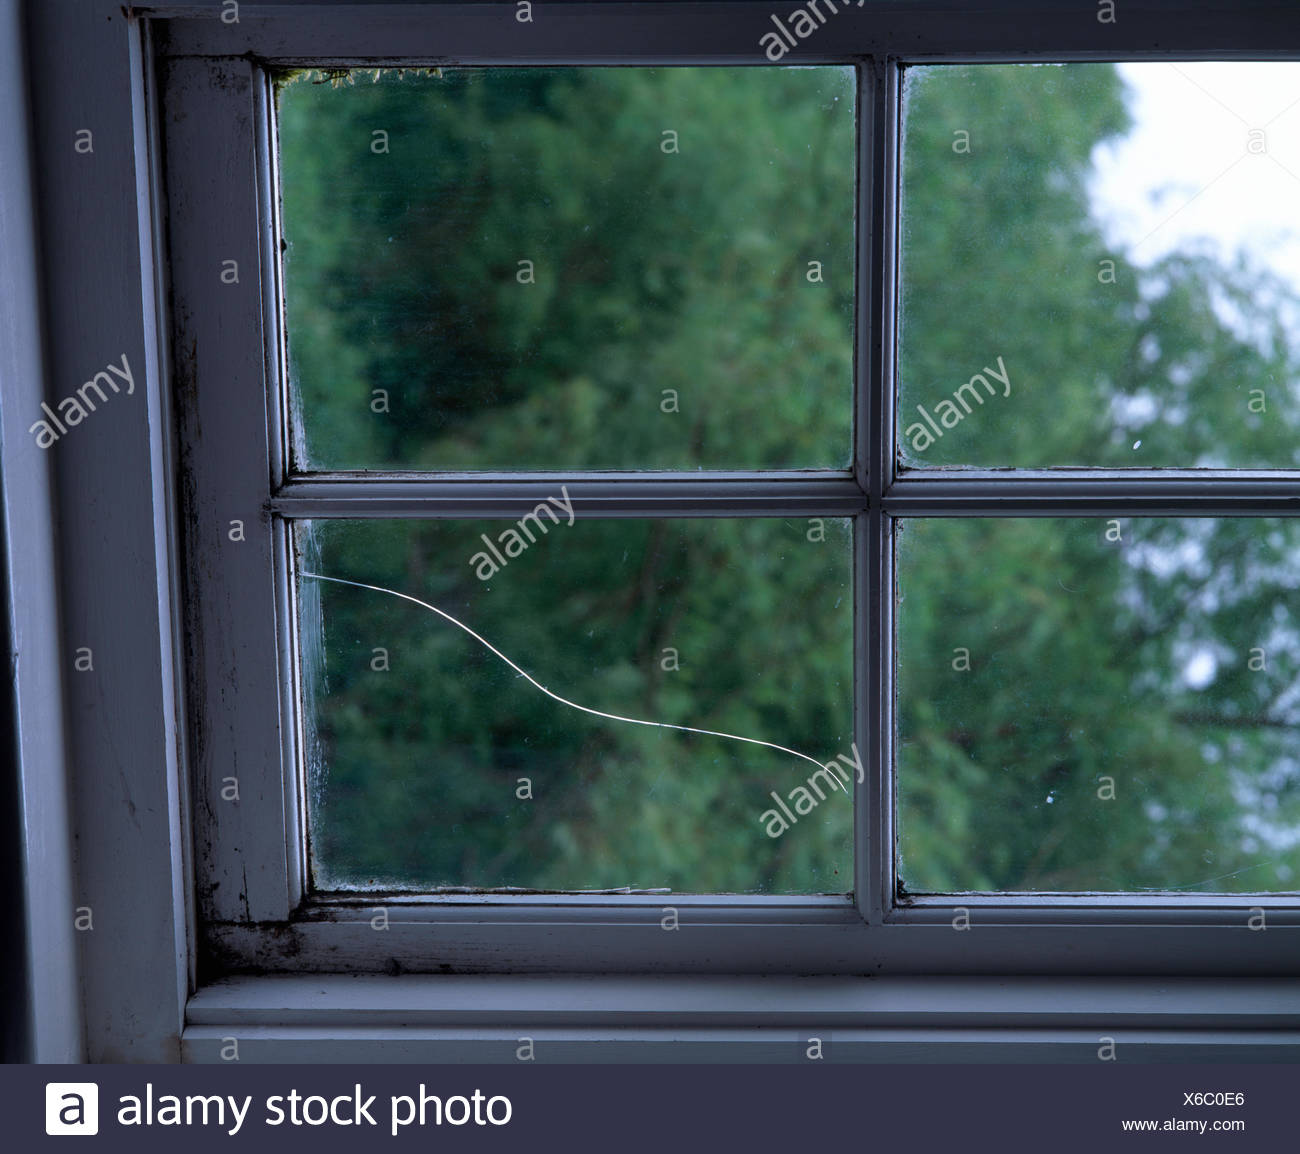 Close-up of a window with a cracked glass pane - Stock Image